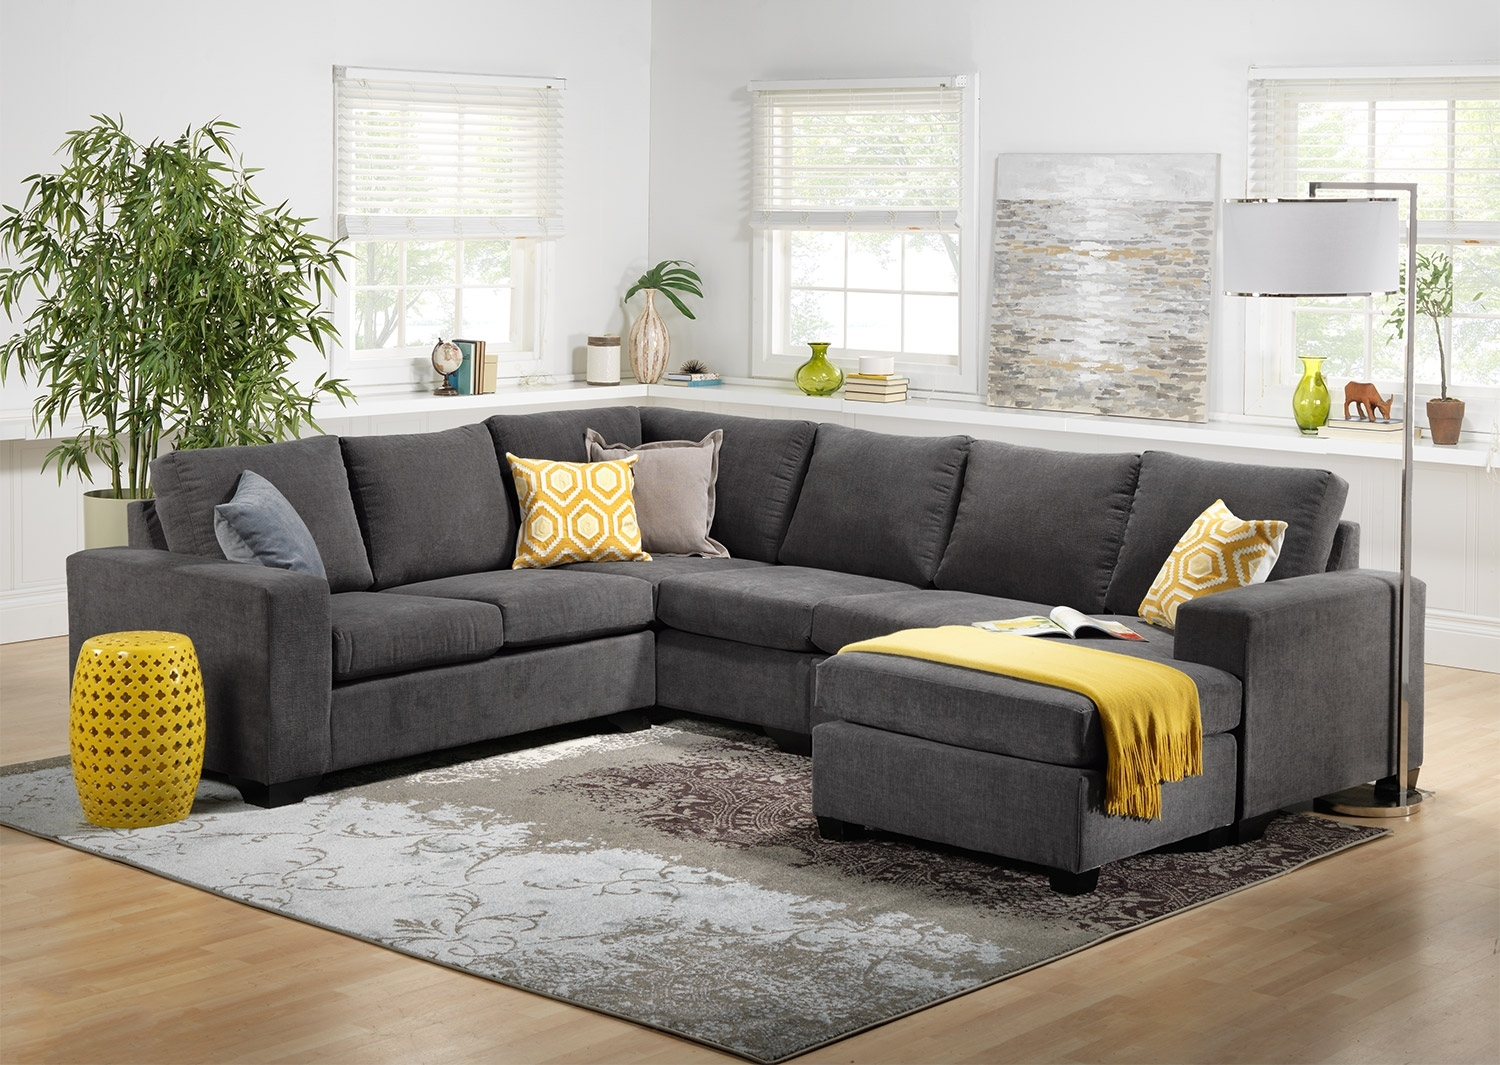 Danielle 3 Piece Sectional With Right Facing Corner Wedge – Grey With Regard To Scarborough Sectional Sofas (View 9 of 10)